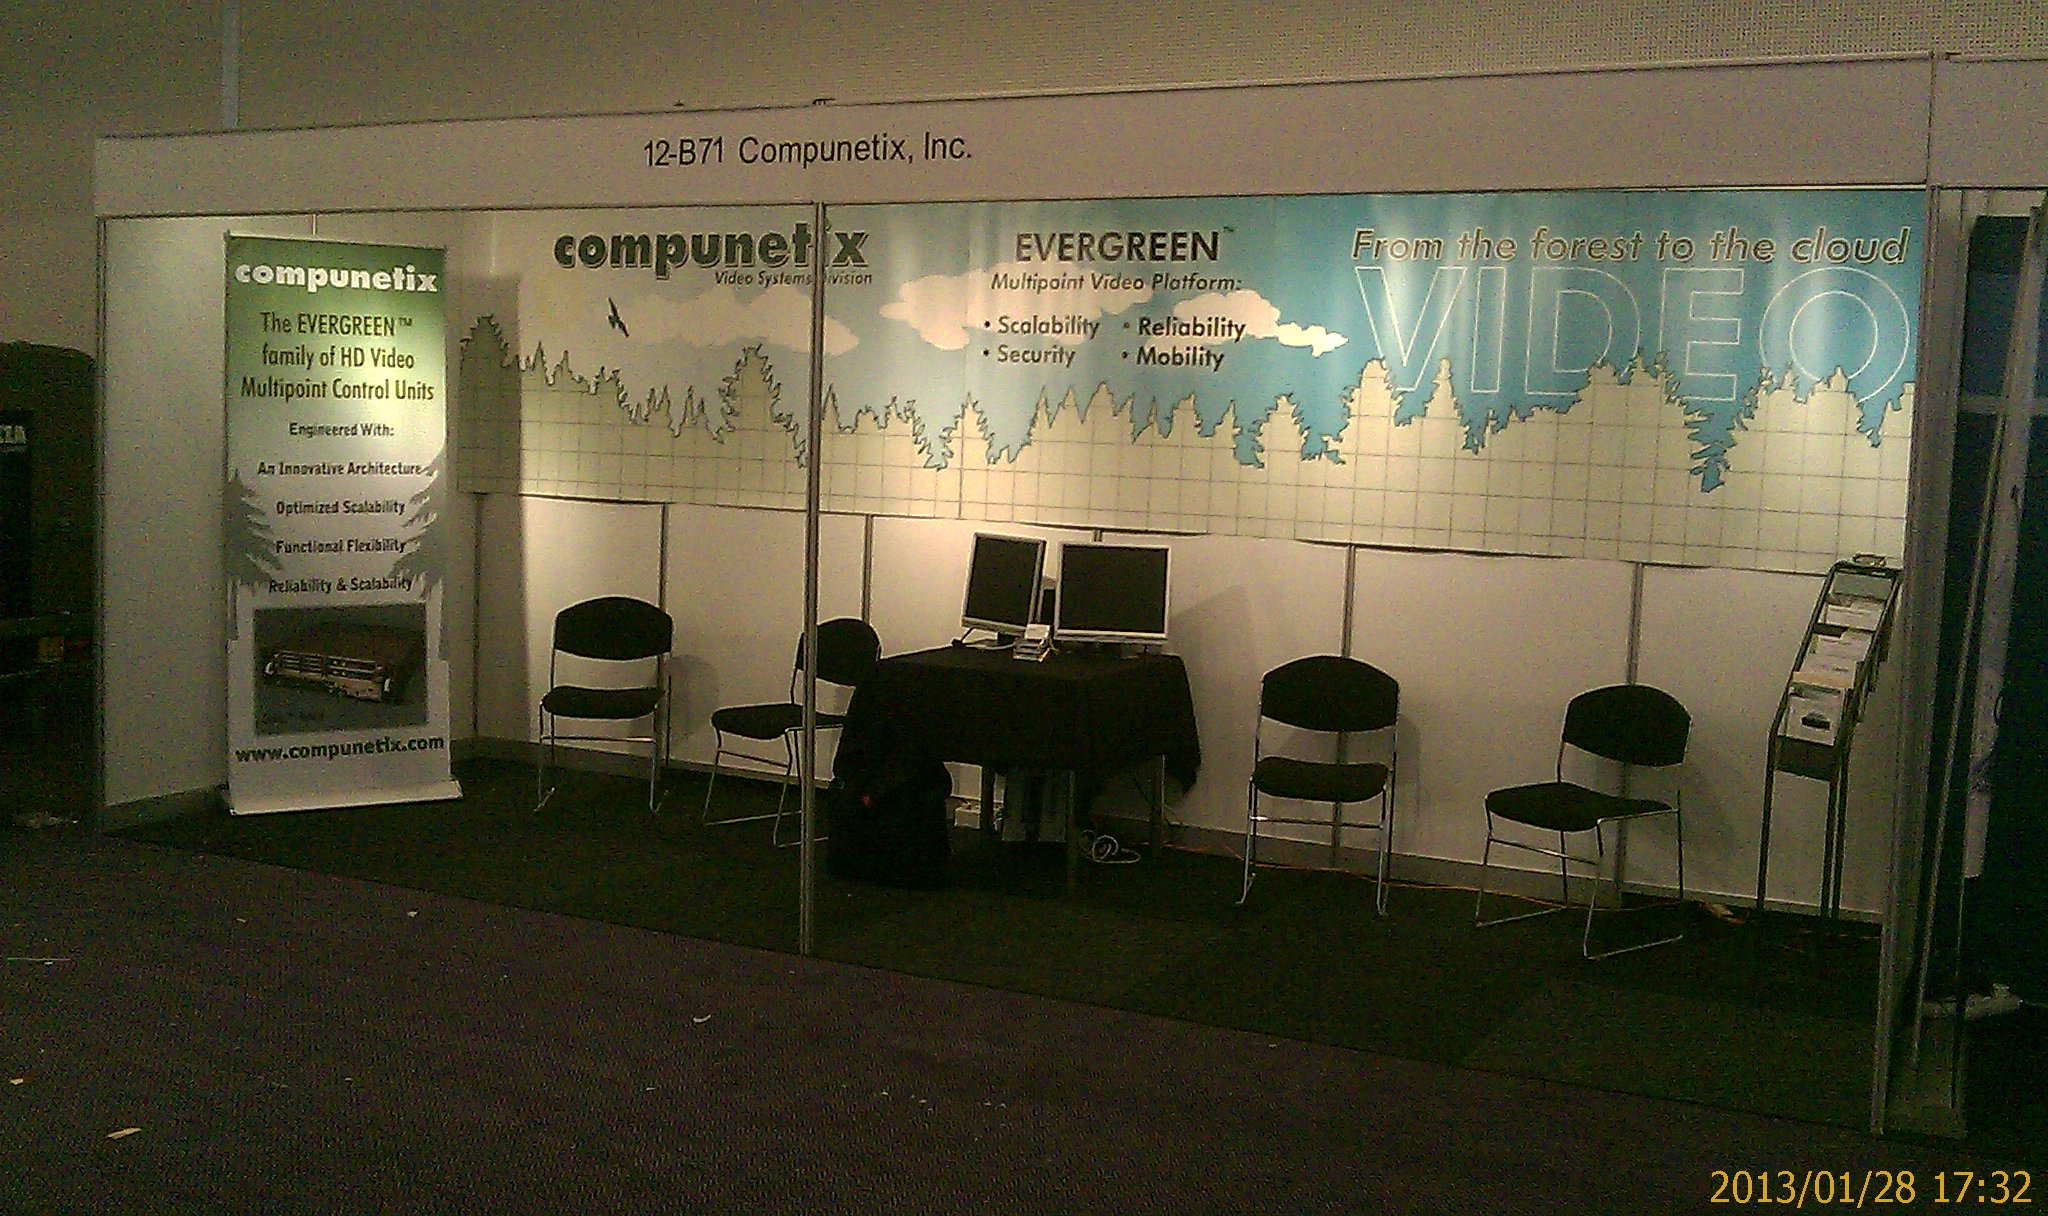 The Compunetix Booth at ISE 2013